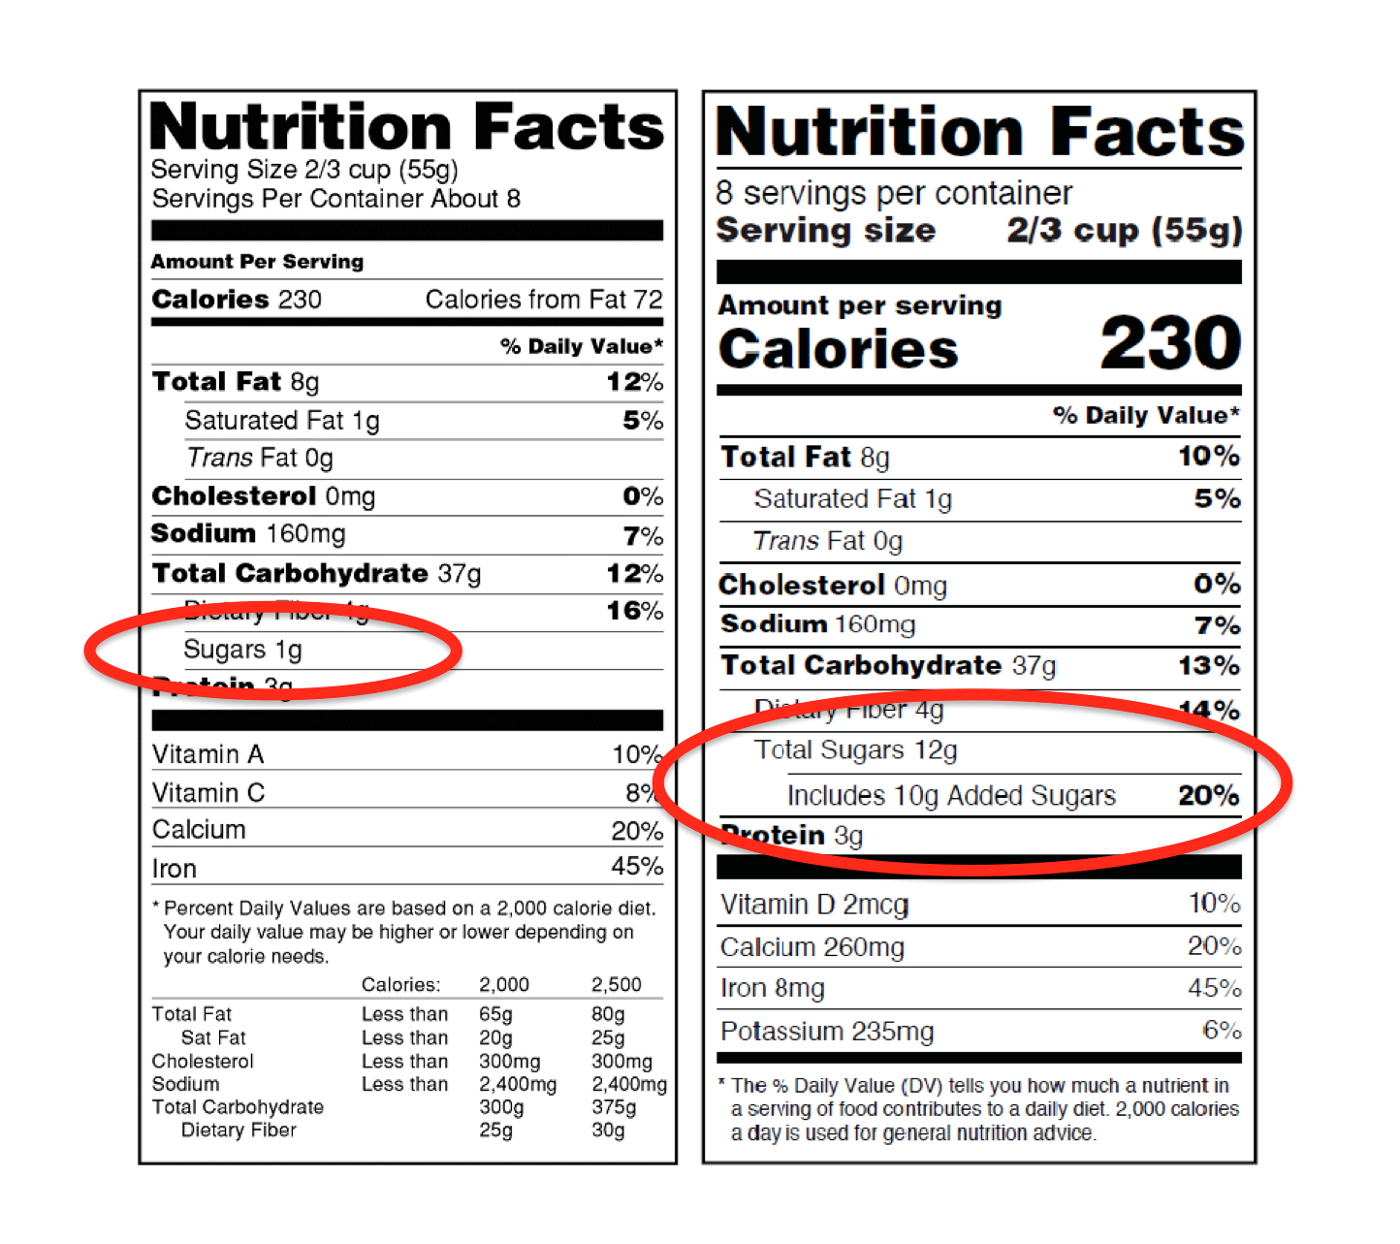 New labeling rules from the FDA will require all sugars contained in foods to be identified as well as their overall percentage of total ingredients.